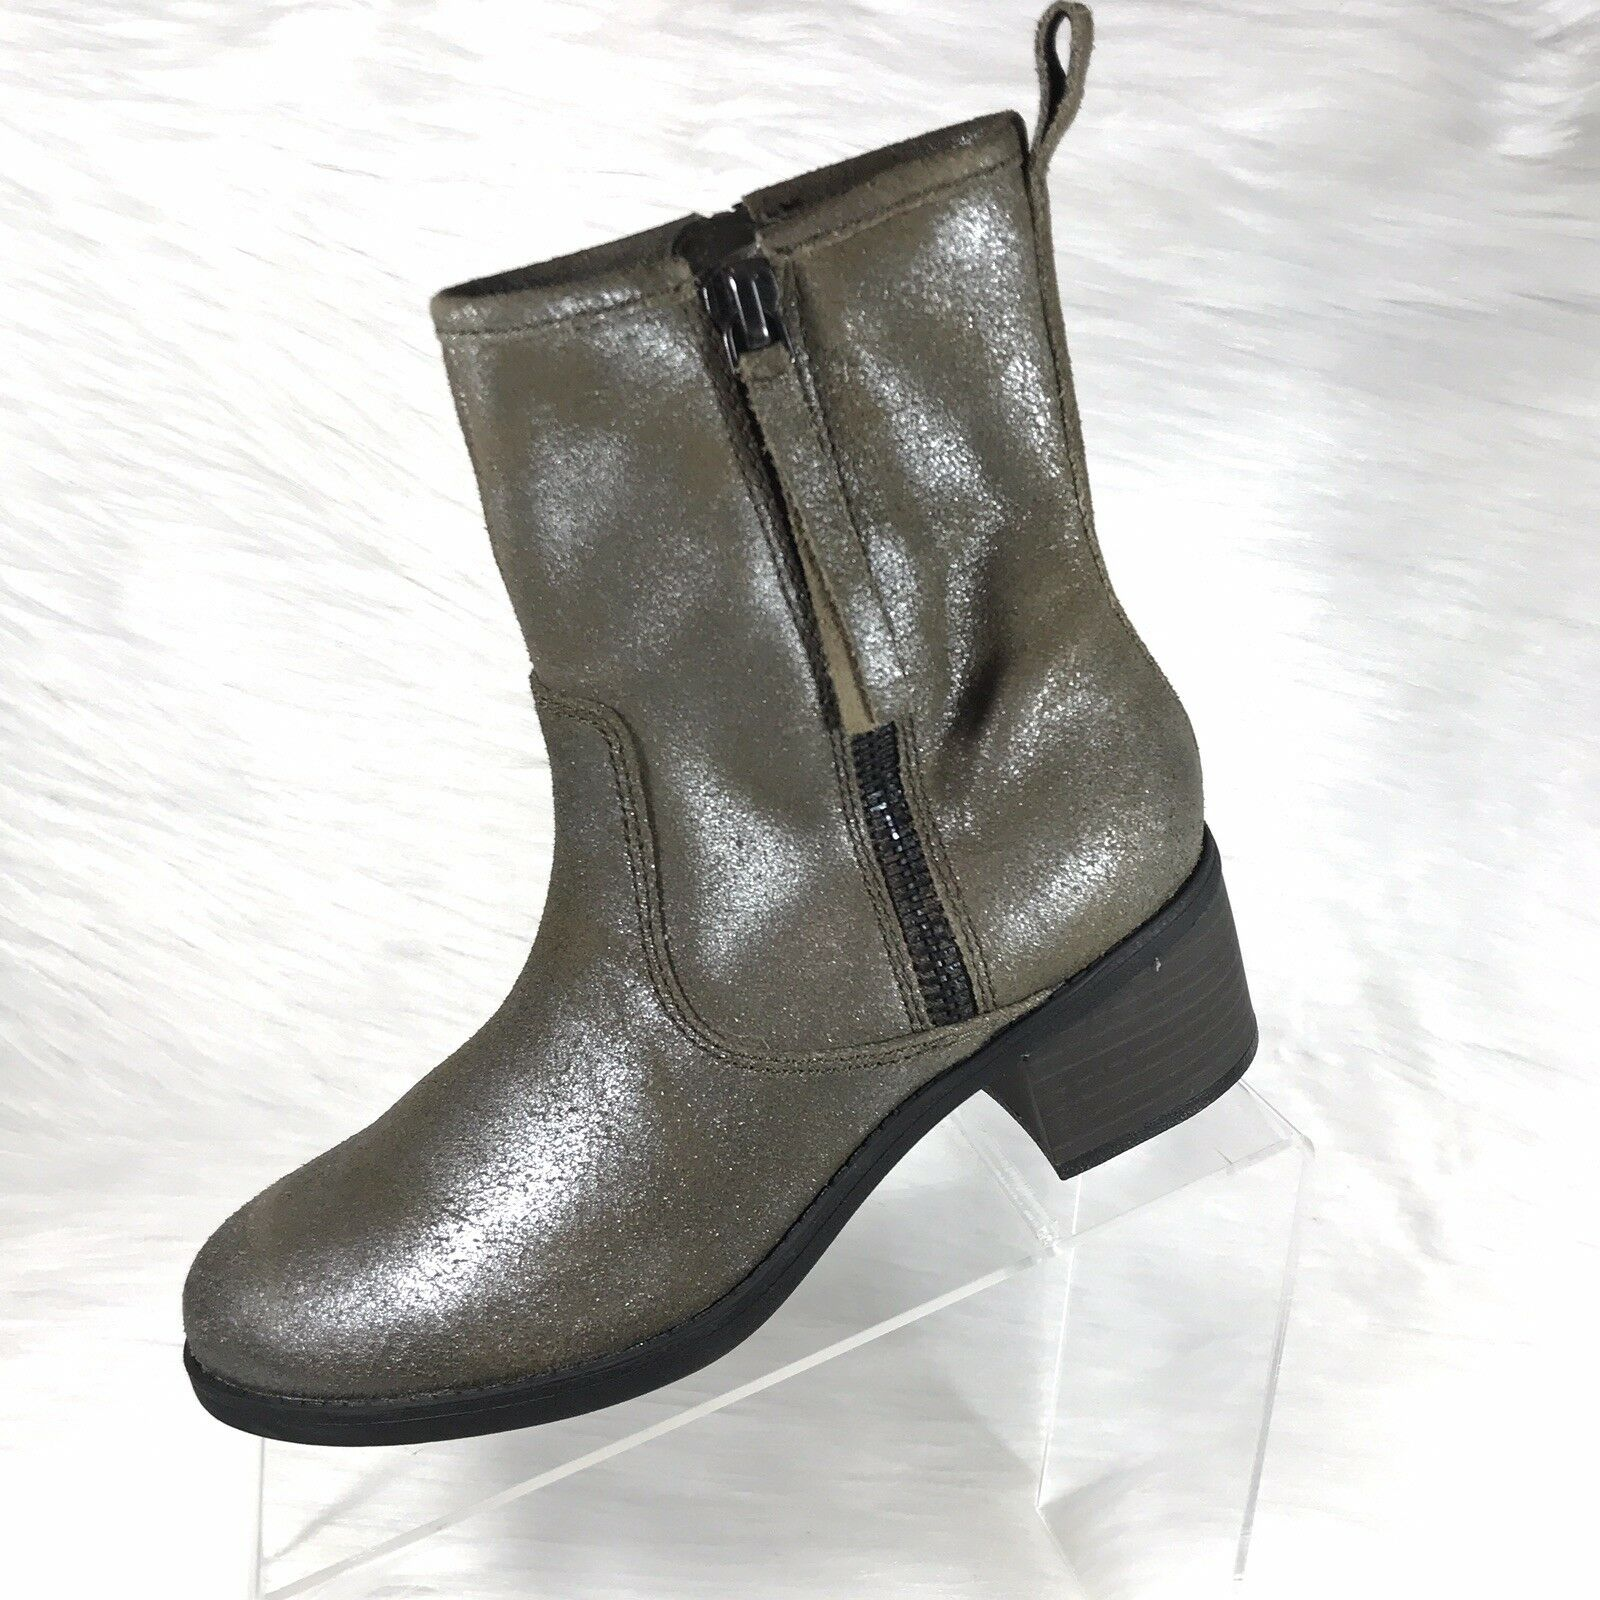 Clarks Collection Women's Ankle Boots Nevella Devon Taupe Leather Size 7.5 M